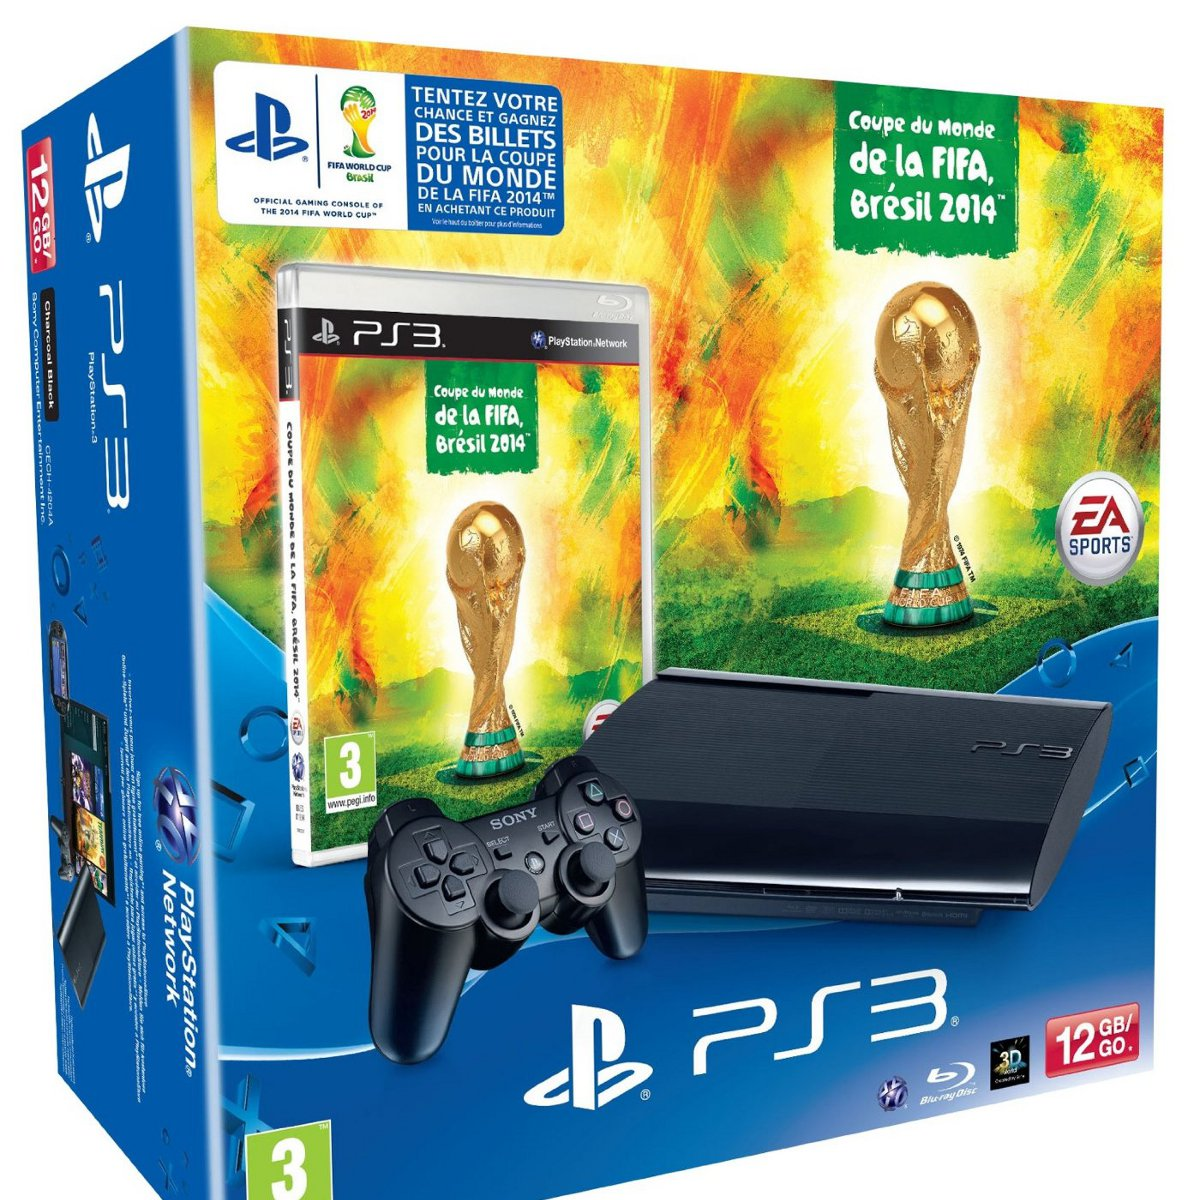 Sony playstation 3 ultra slim coupe du monde de la fifa br sil 2014 sony - Coupe du monde 2014 jeux ...